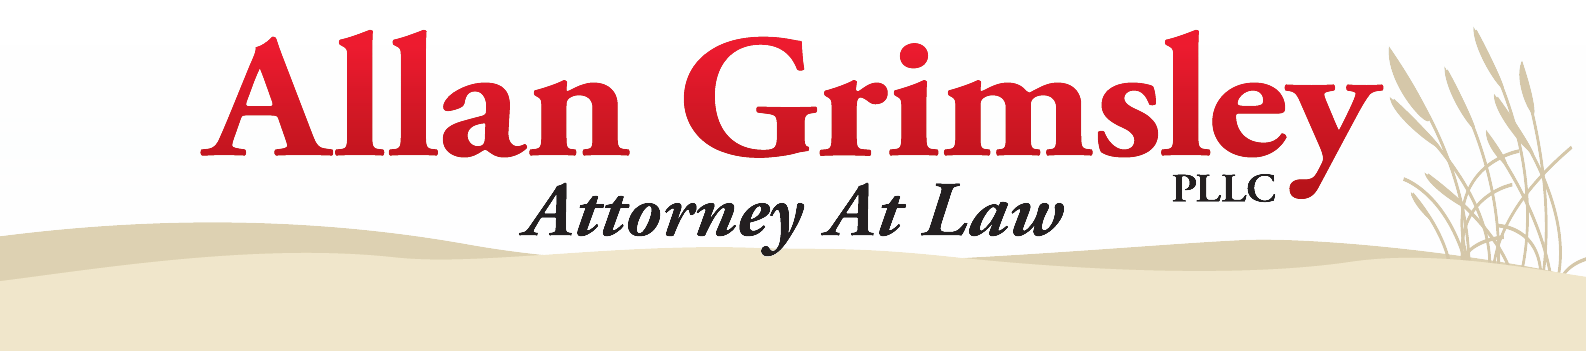 Allan Grimsley, Attorney at Law, PLLC - Outer Banks NC